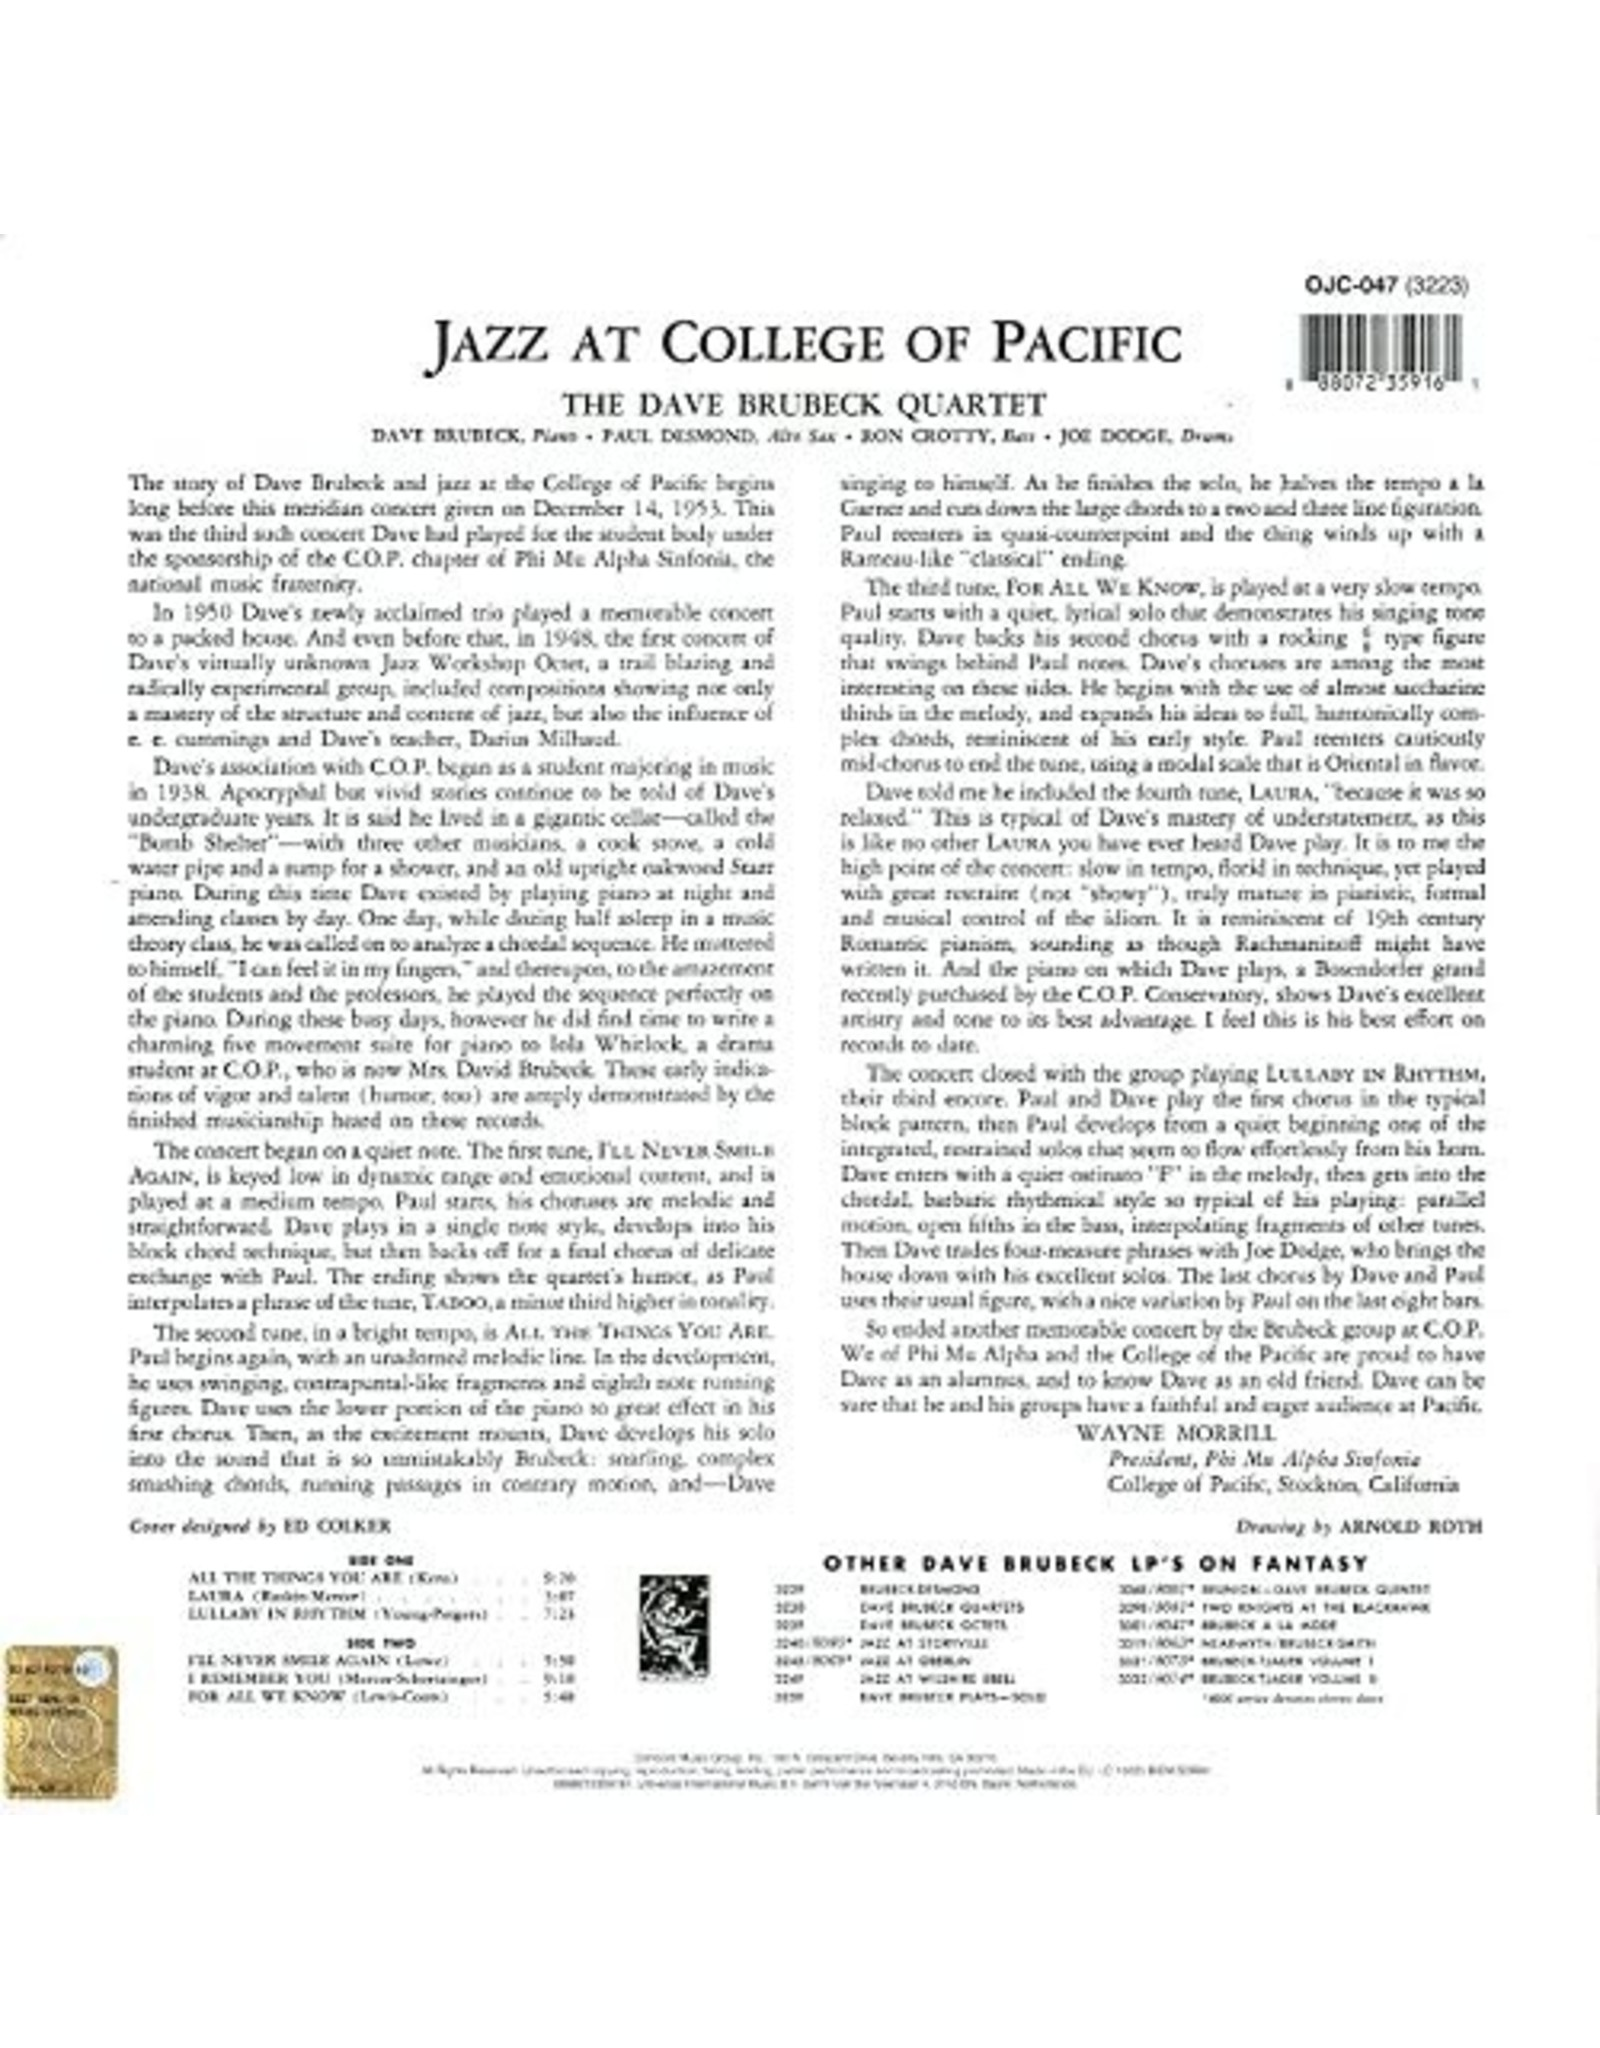 Dave Brubeck - Jazz At The College Of The Pacific